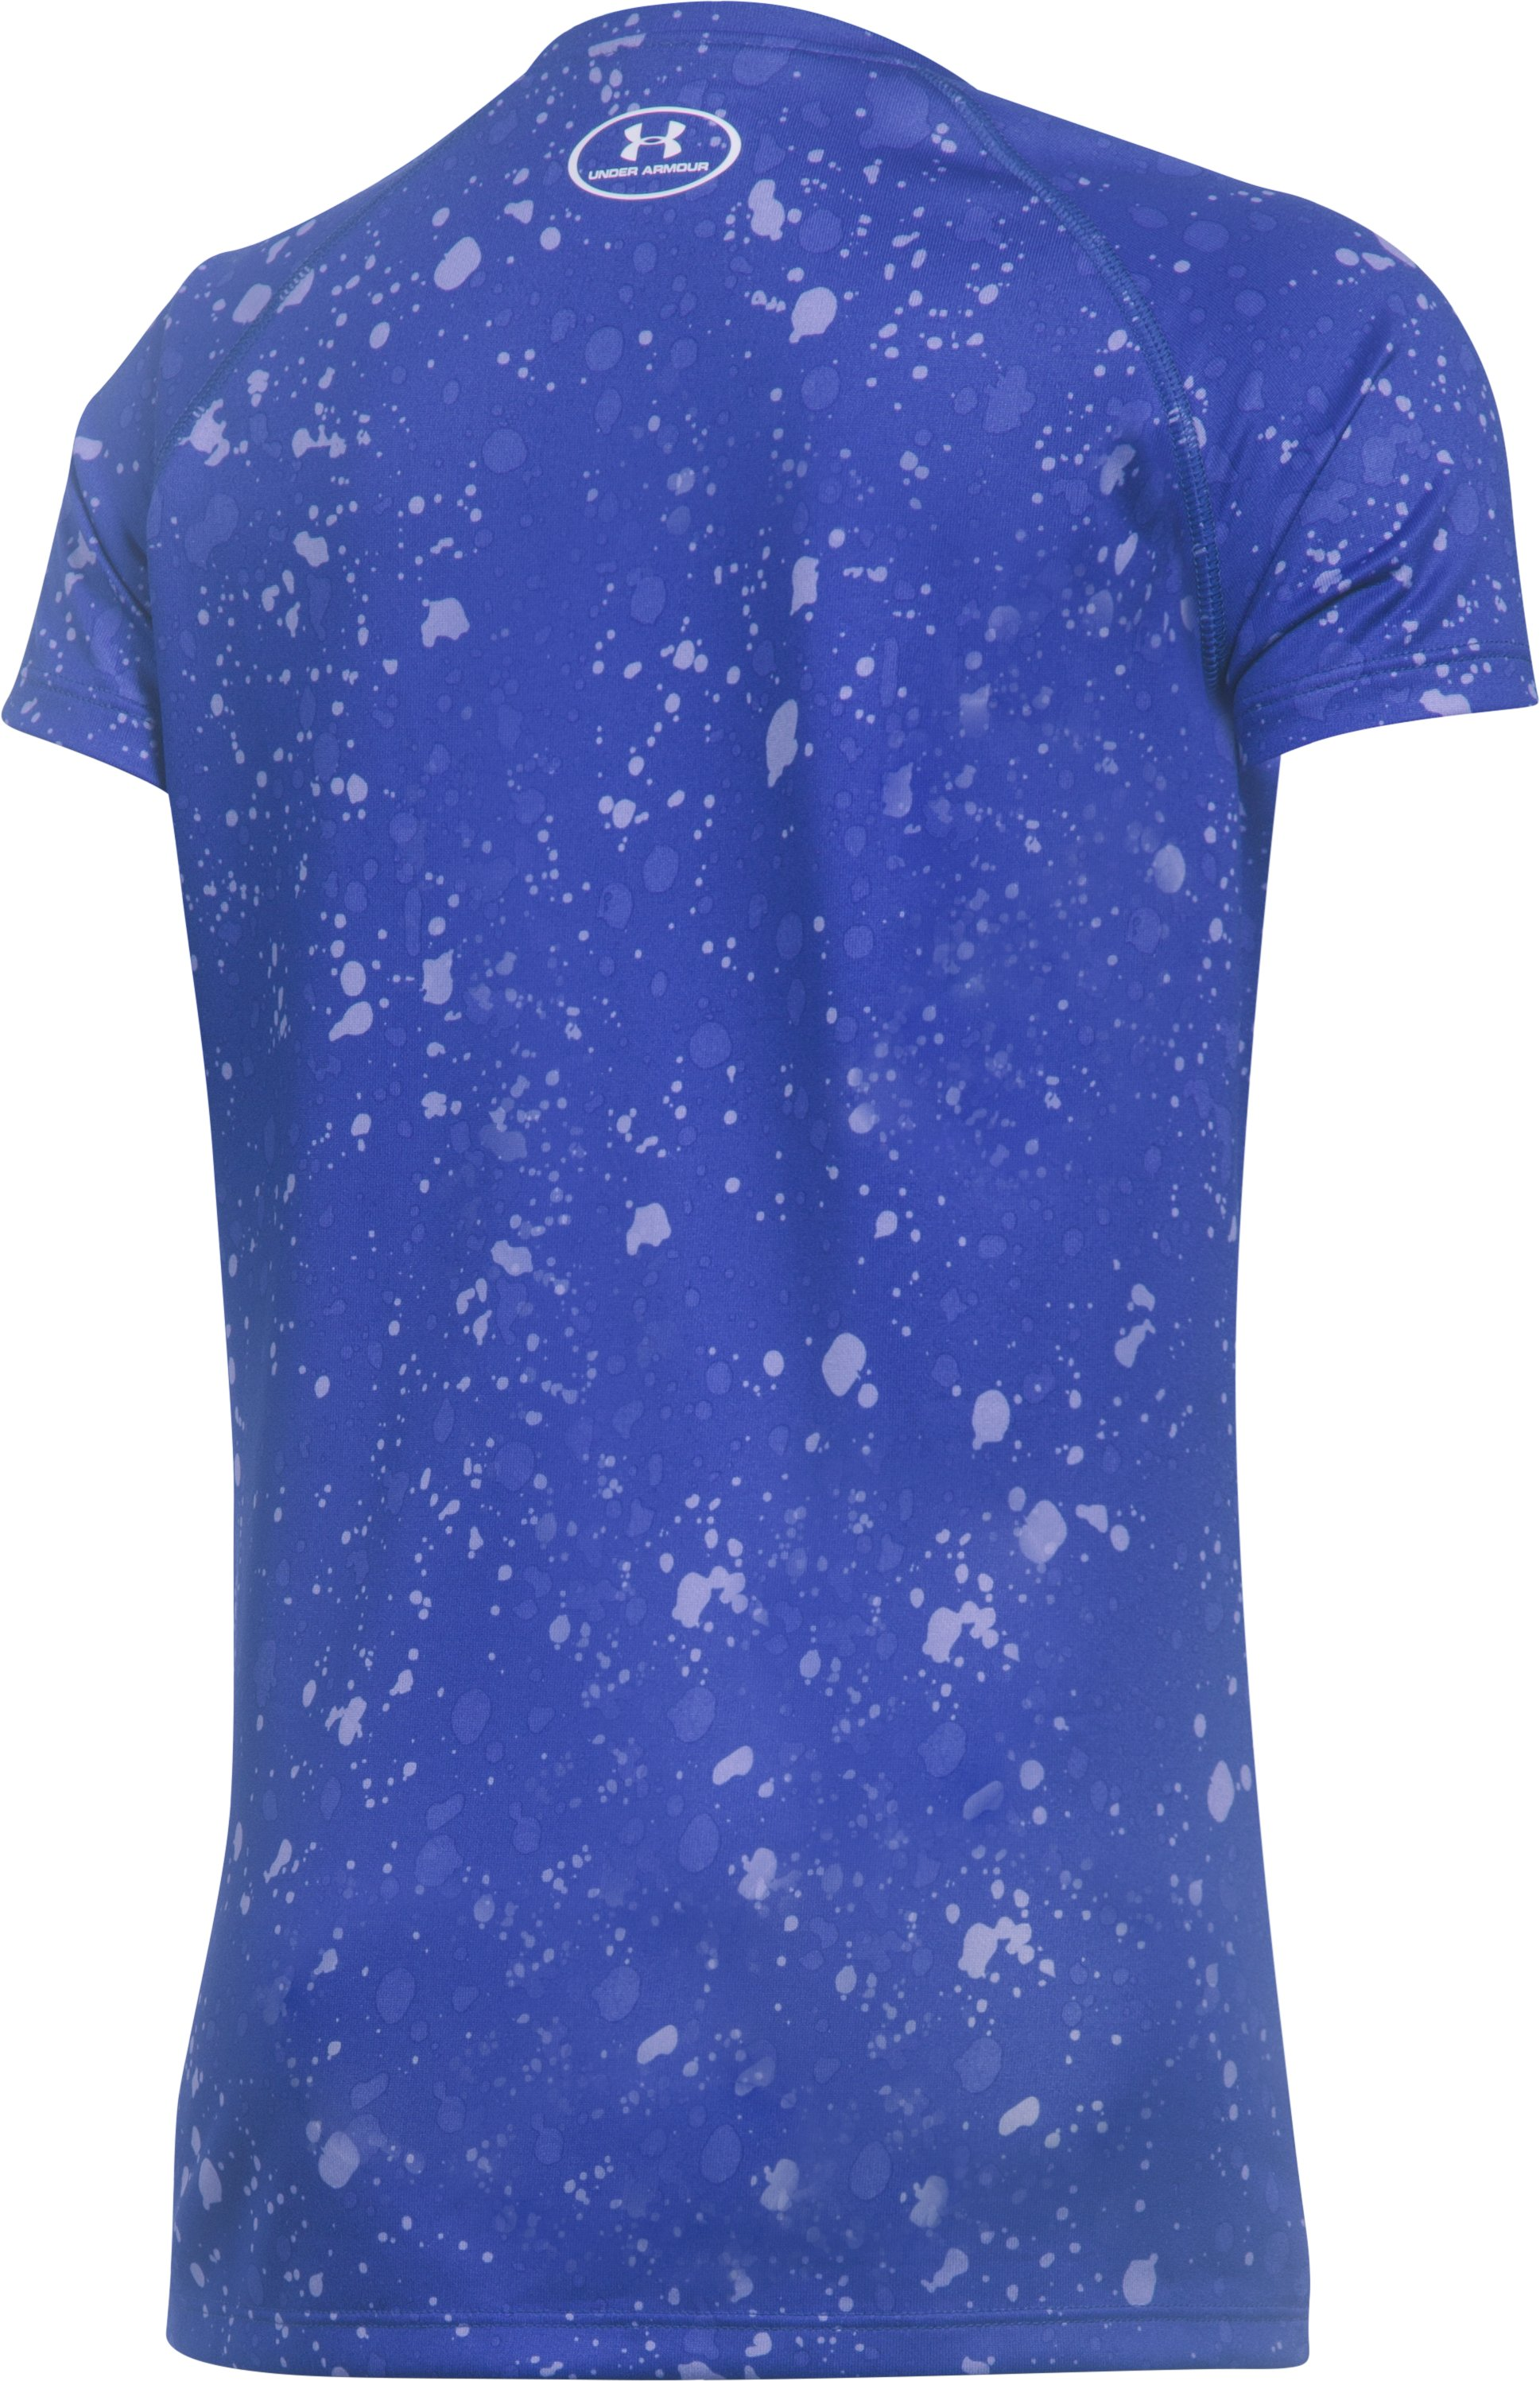 Girls' UA Big Logo Short Sleeve T-Shirt, CONSTELLATION PURPLE, undefined